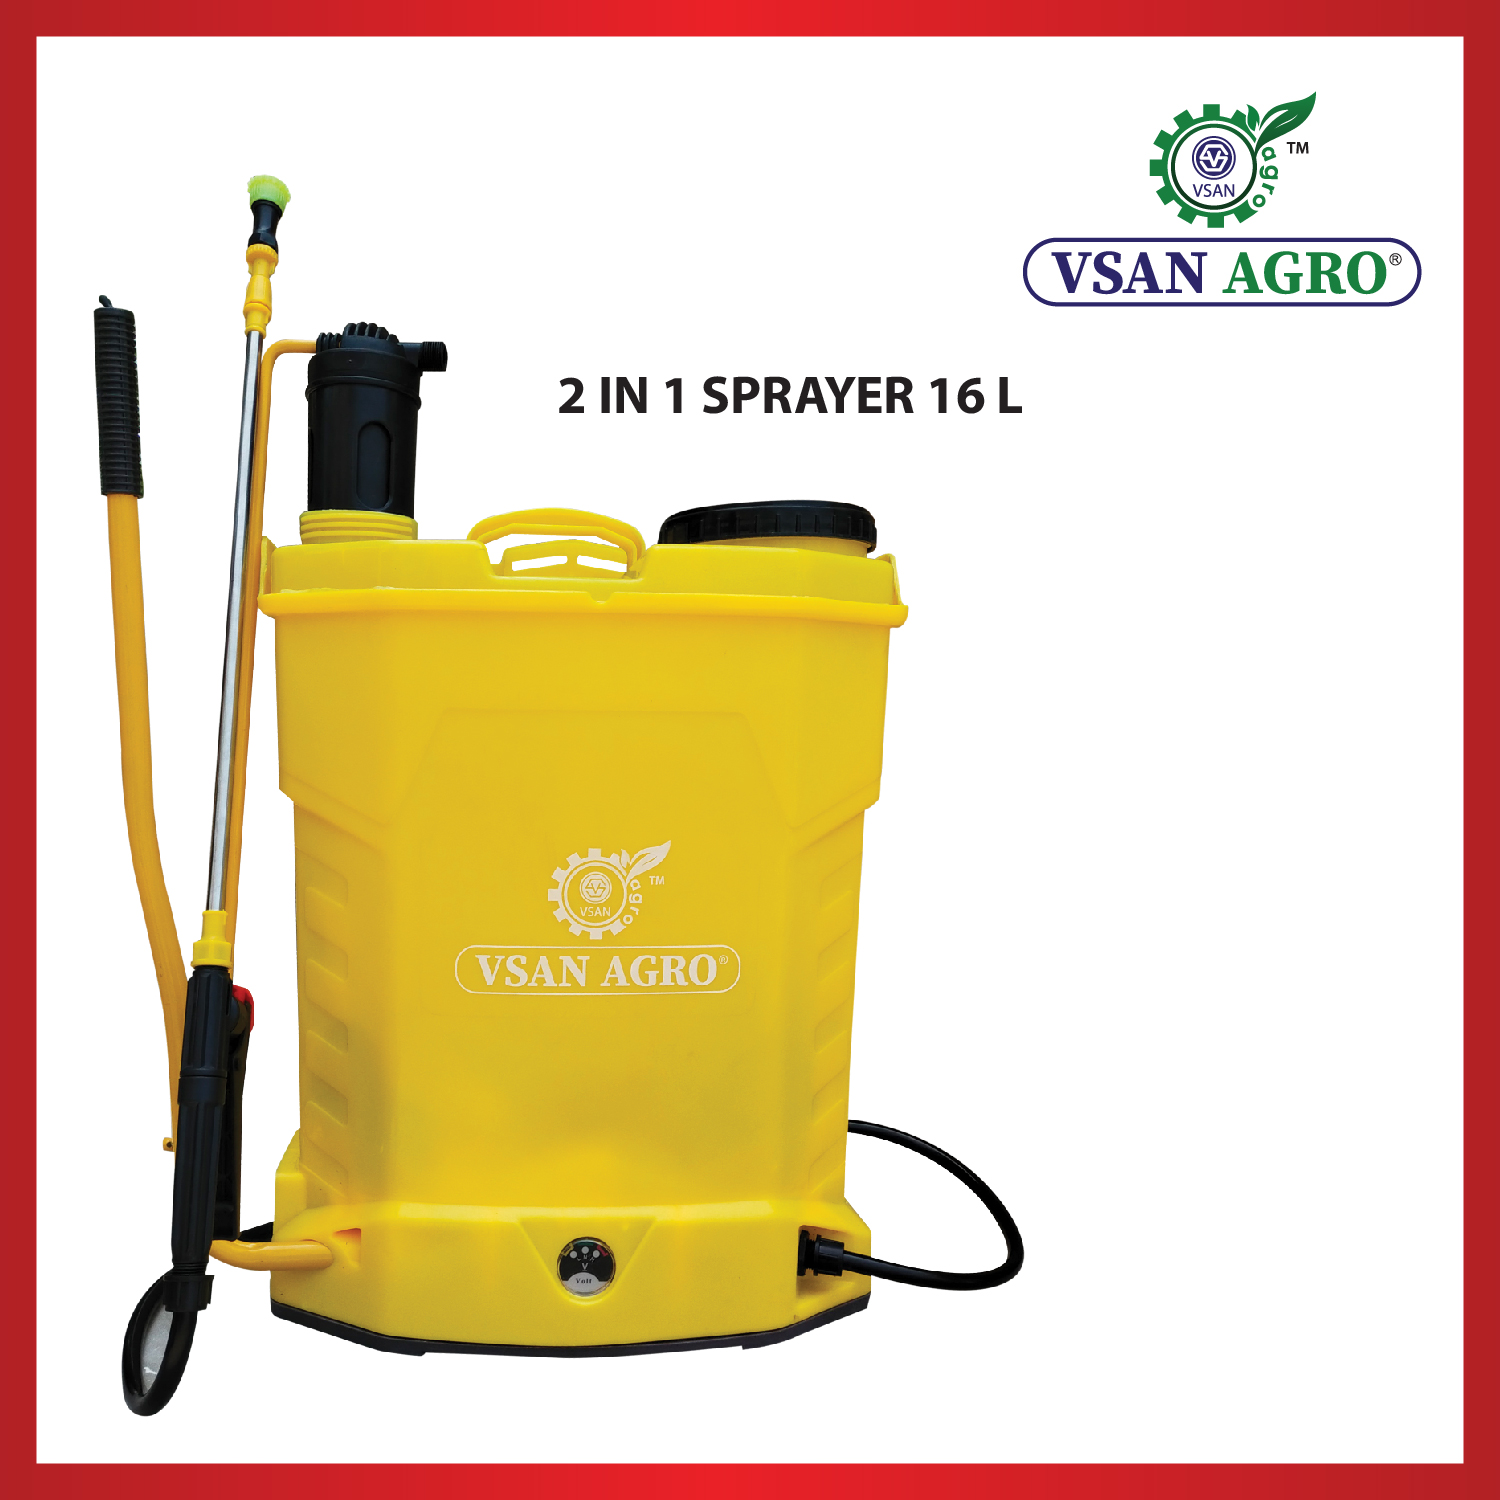 VSAN 2 in 1 Sprayer 16 L